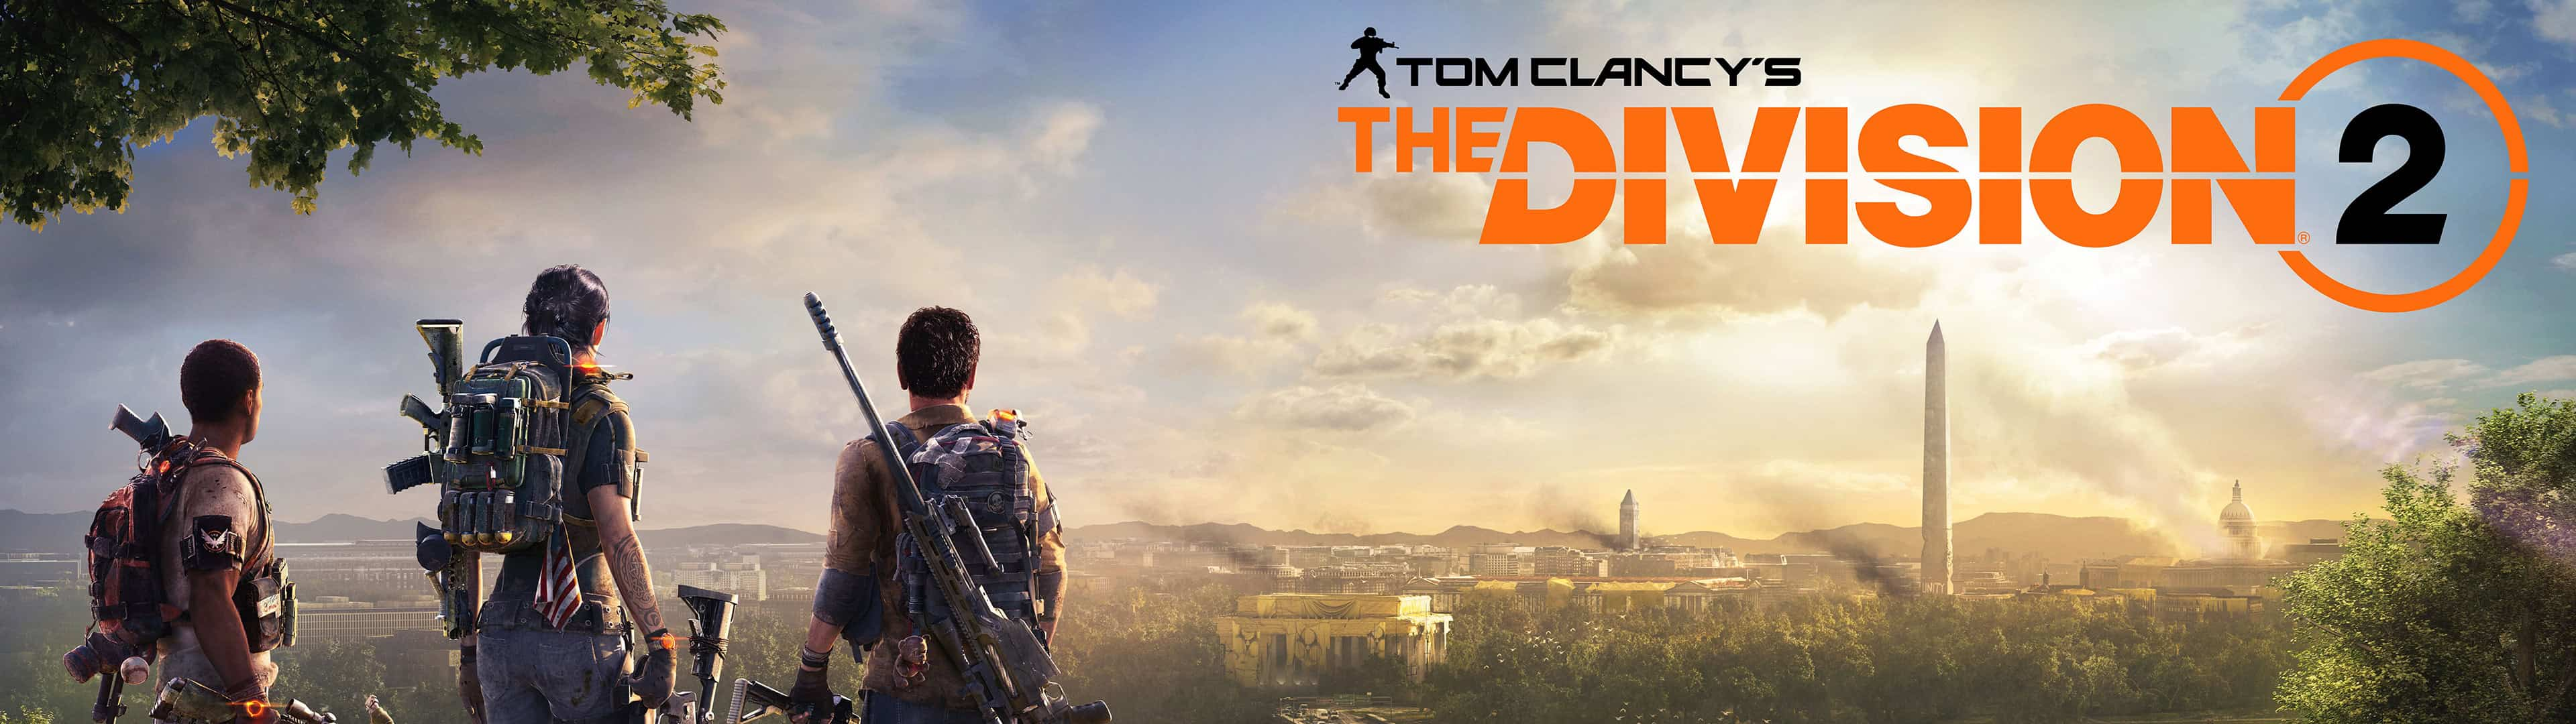 Www Hd Wallpaper Com Nature Tom Clancy The Division 2 Poster Dual Monitor Wallpaper